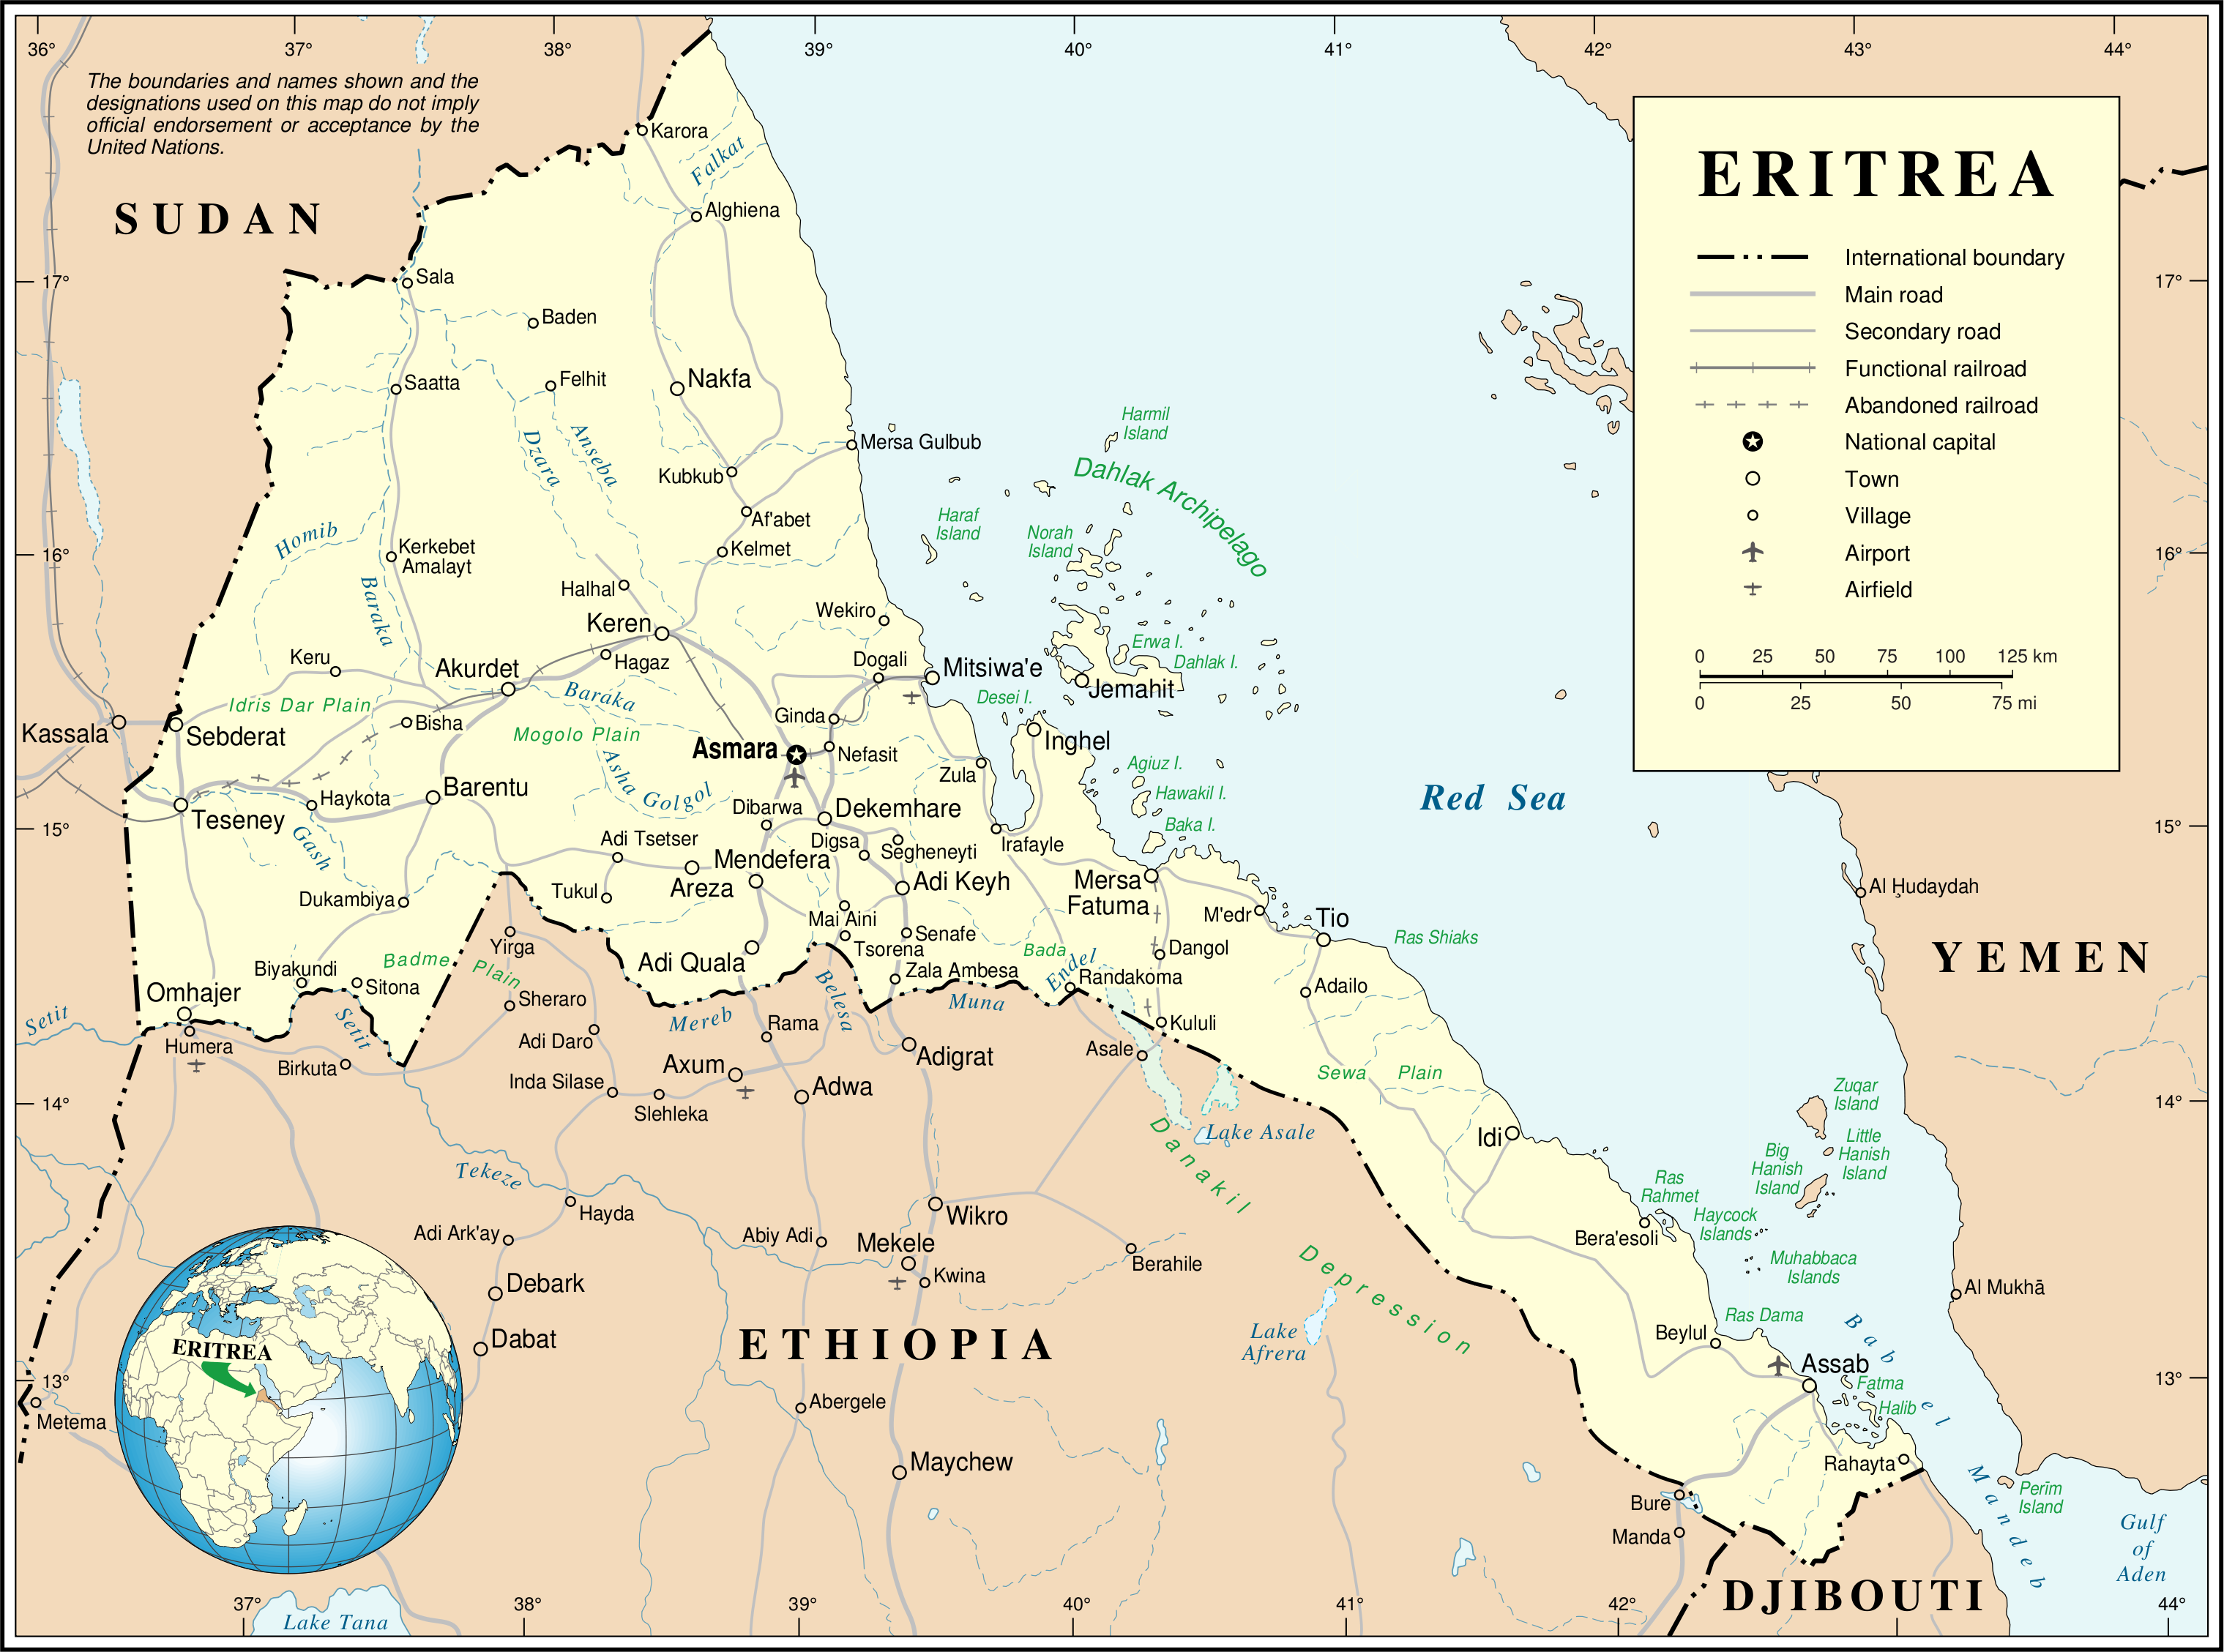 http://upload.wikimedia.org/wikipedia/commons/b/b2/Un-eritrea.png